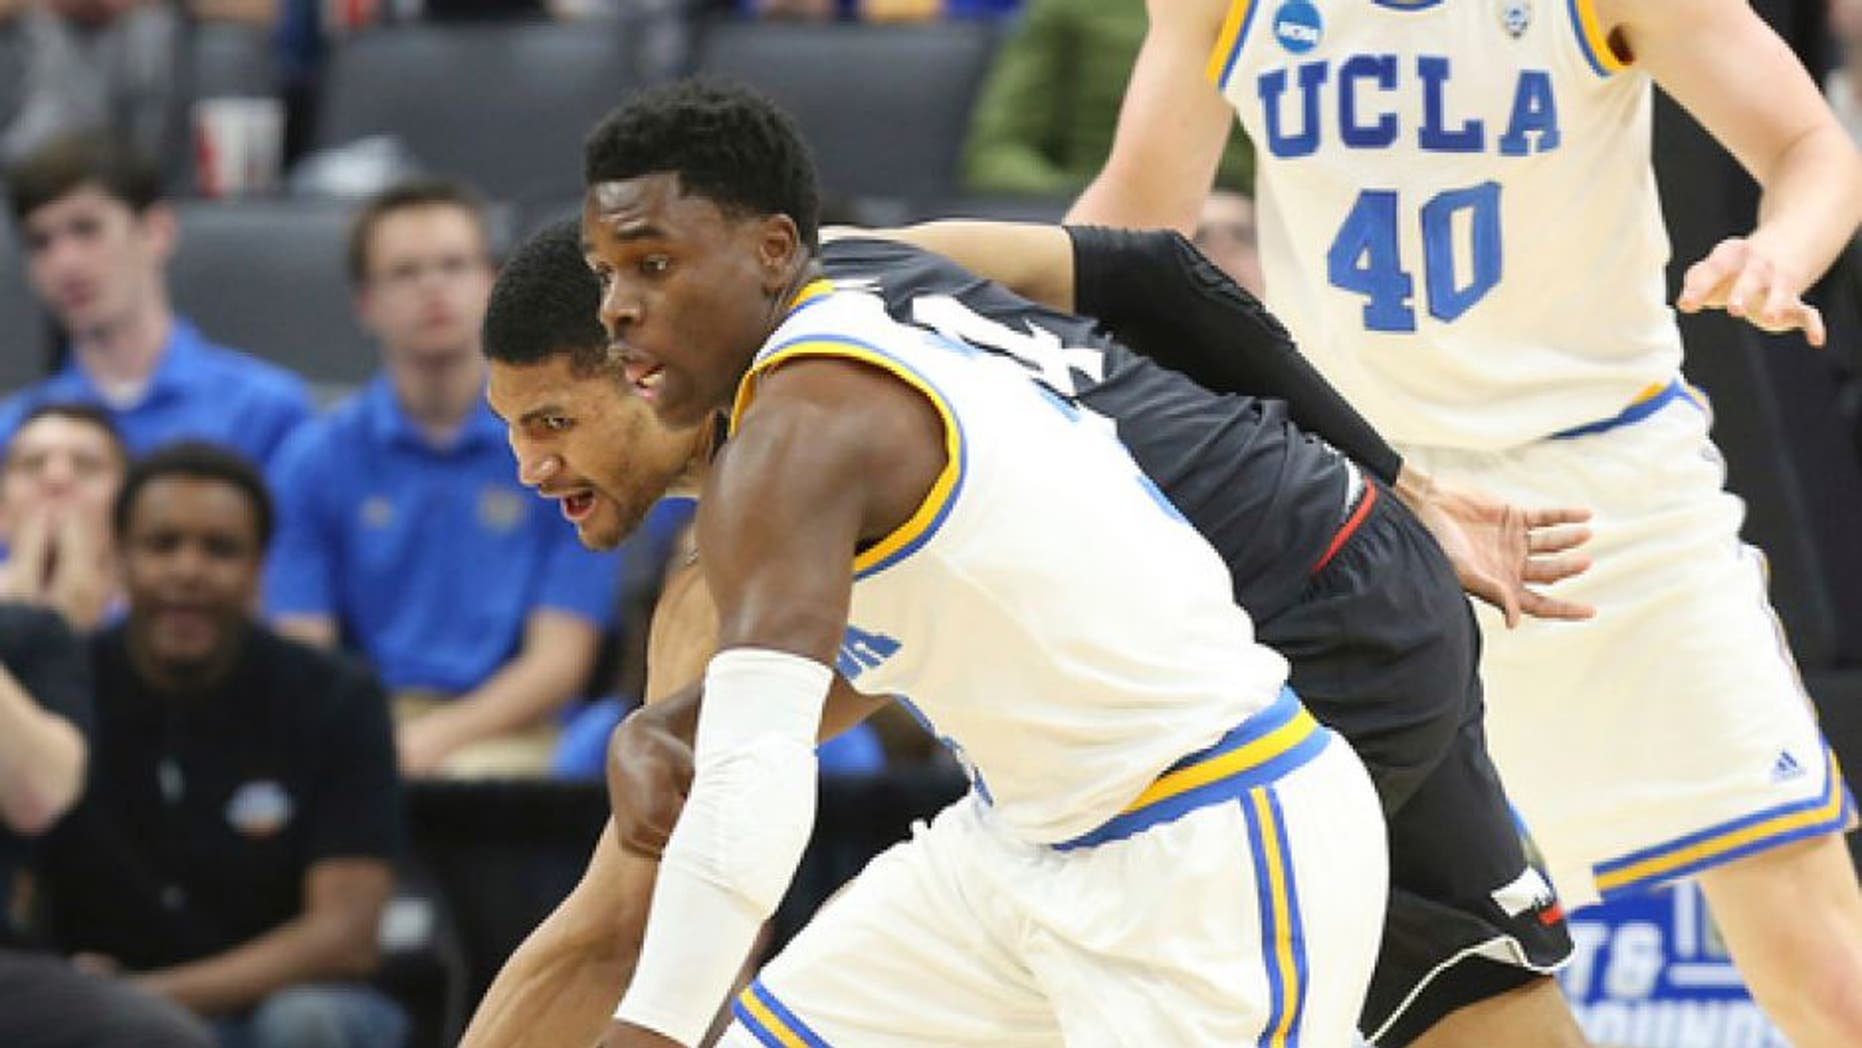 UCLA guard Aaron Holiday, front, comes up with the ball against Cincinnati guard Jarron Cumberland during the first half of a second-round game of the NCAA men's college basketball tournament in Sacramento, Calif., Sunday, March 19, 2017. (AP Photo/Steve Yeater)